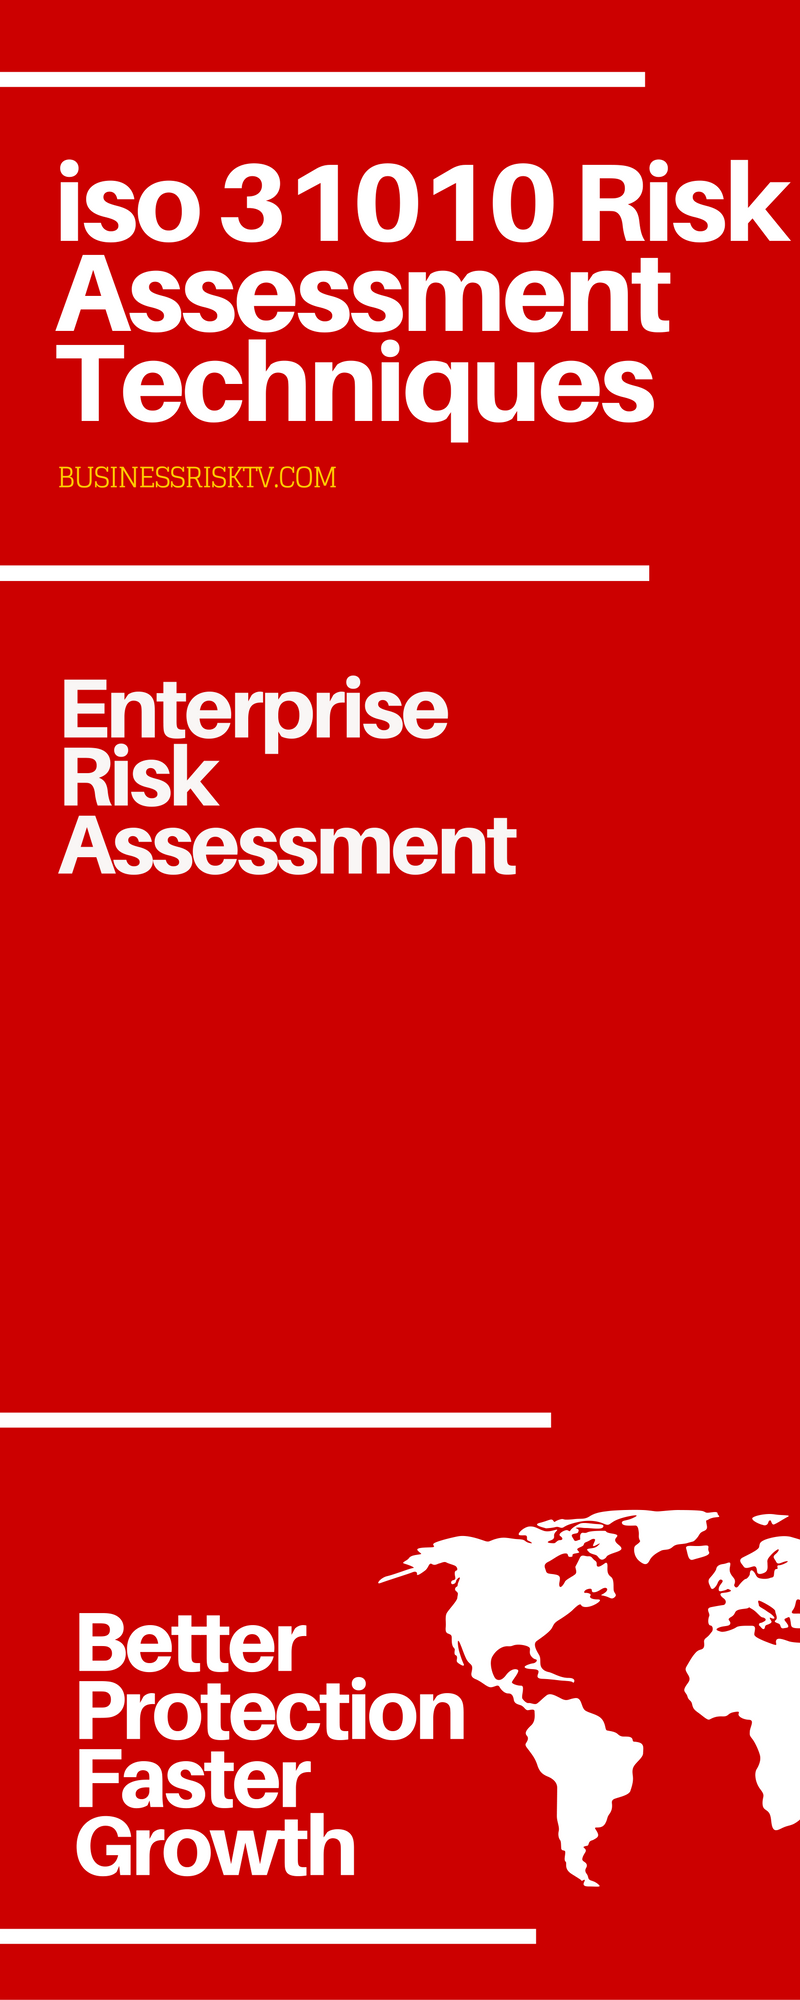 How Do You Assess Business Risks